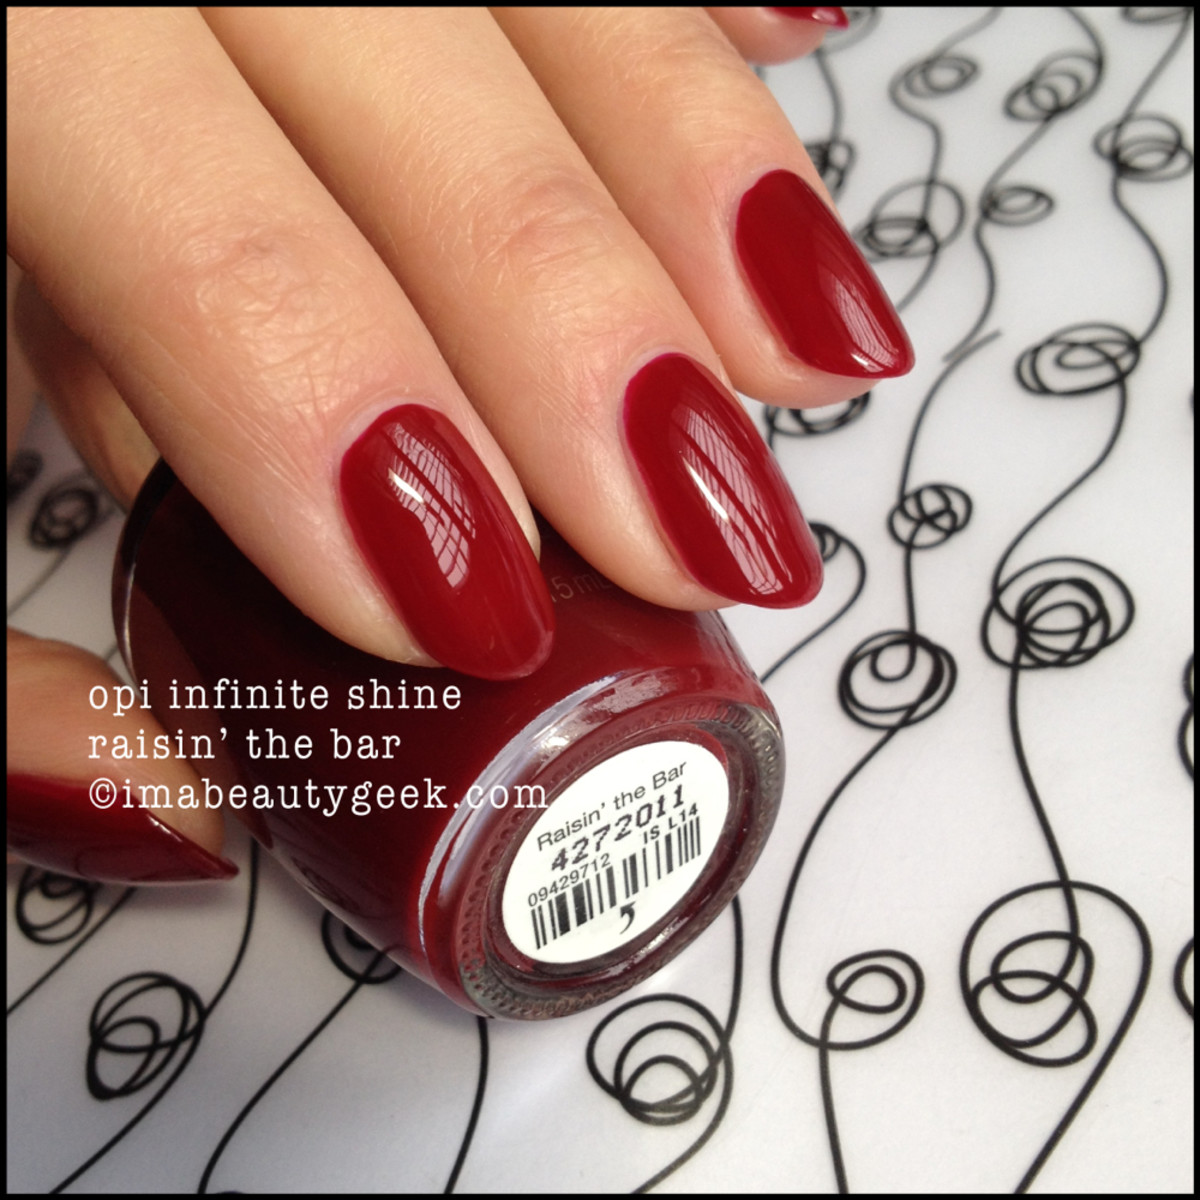 OPI Raisin the Bar Infinite Shine 2015